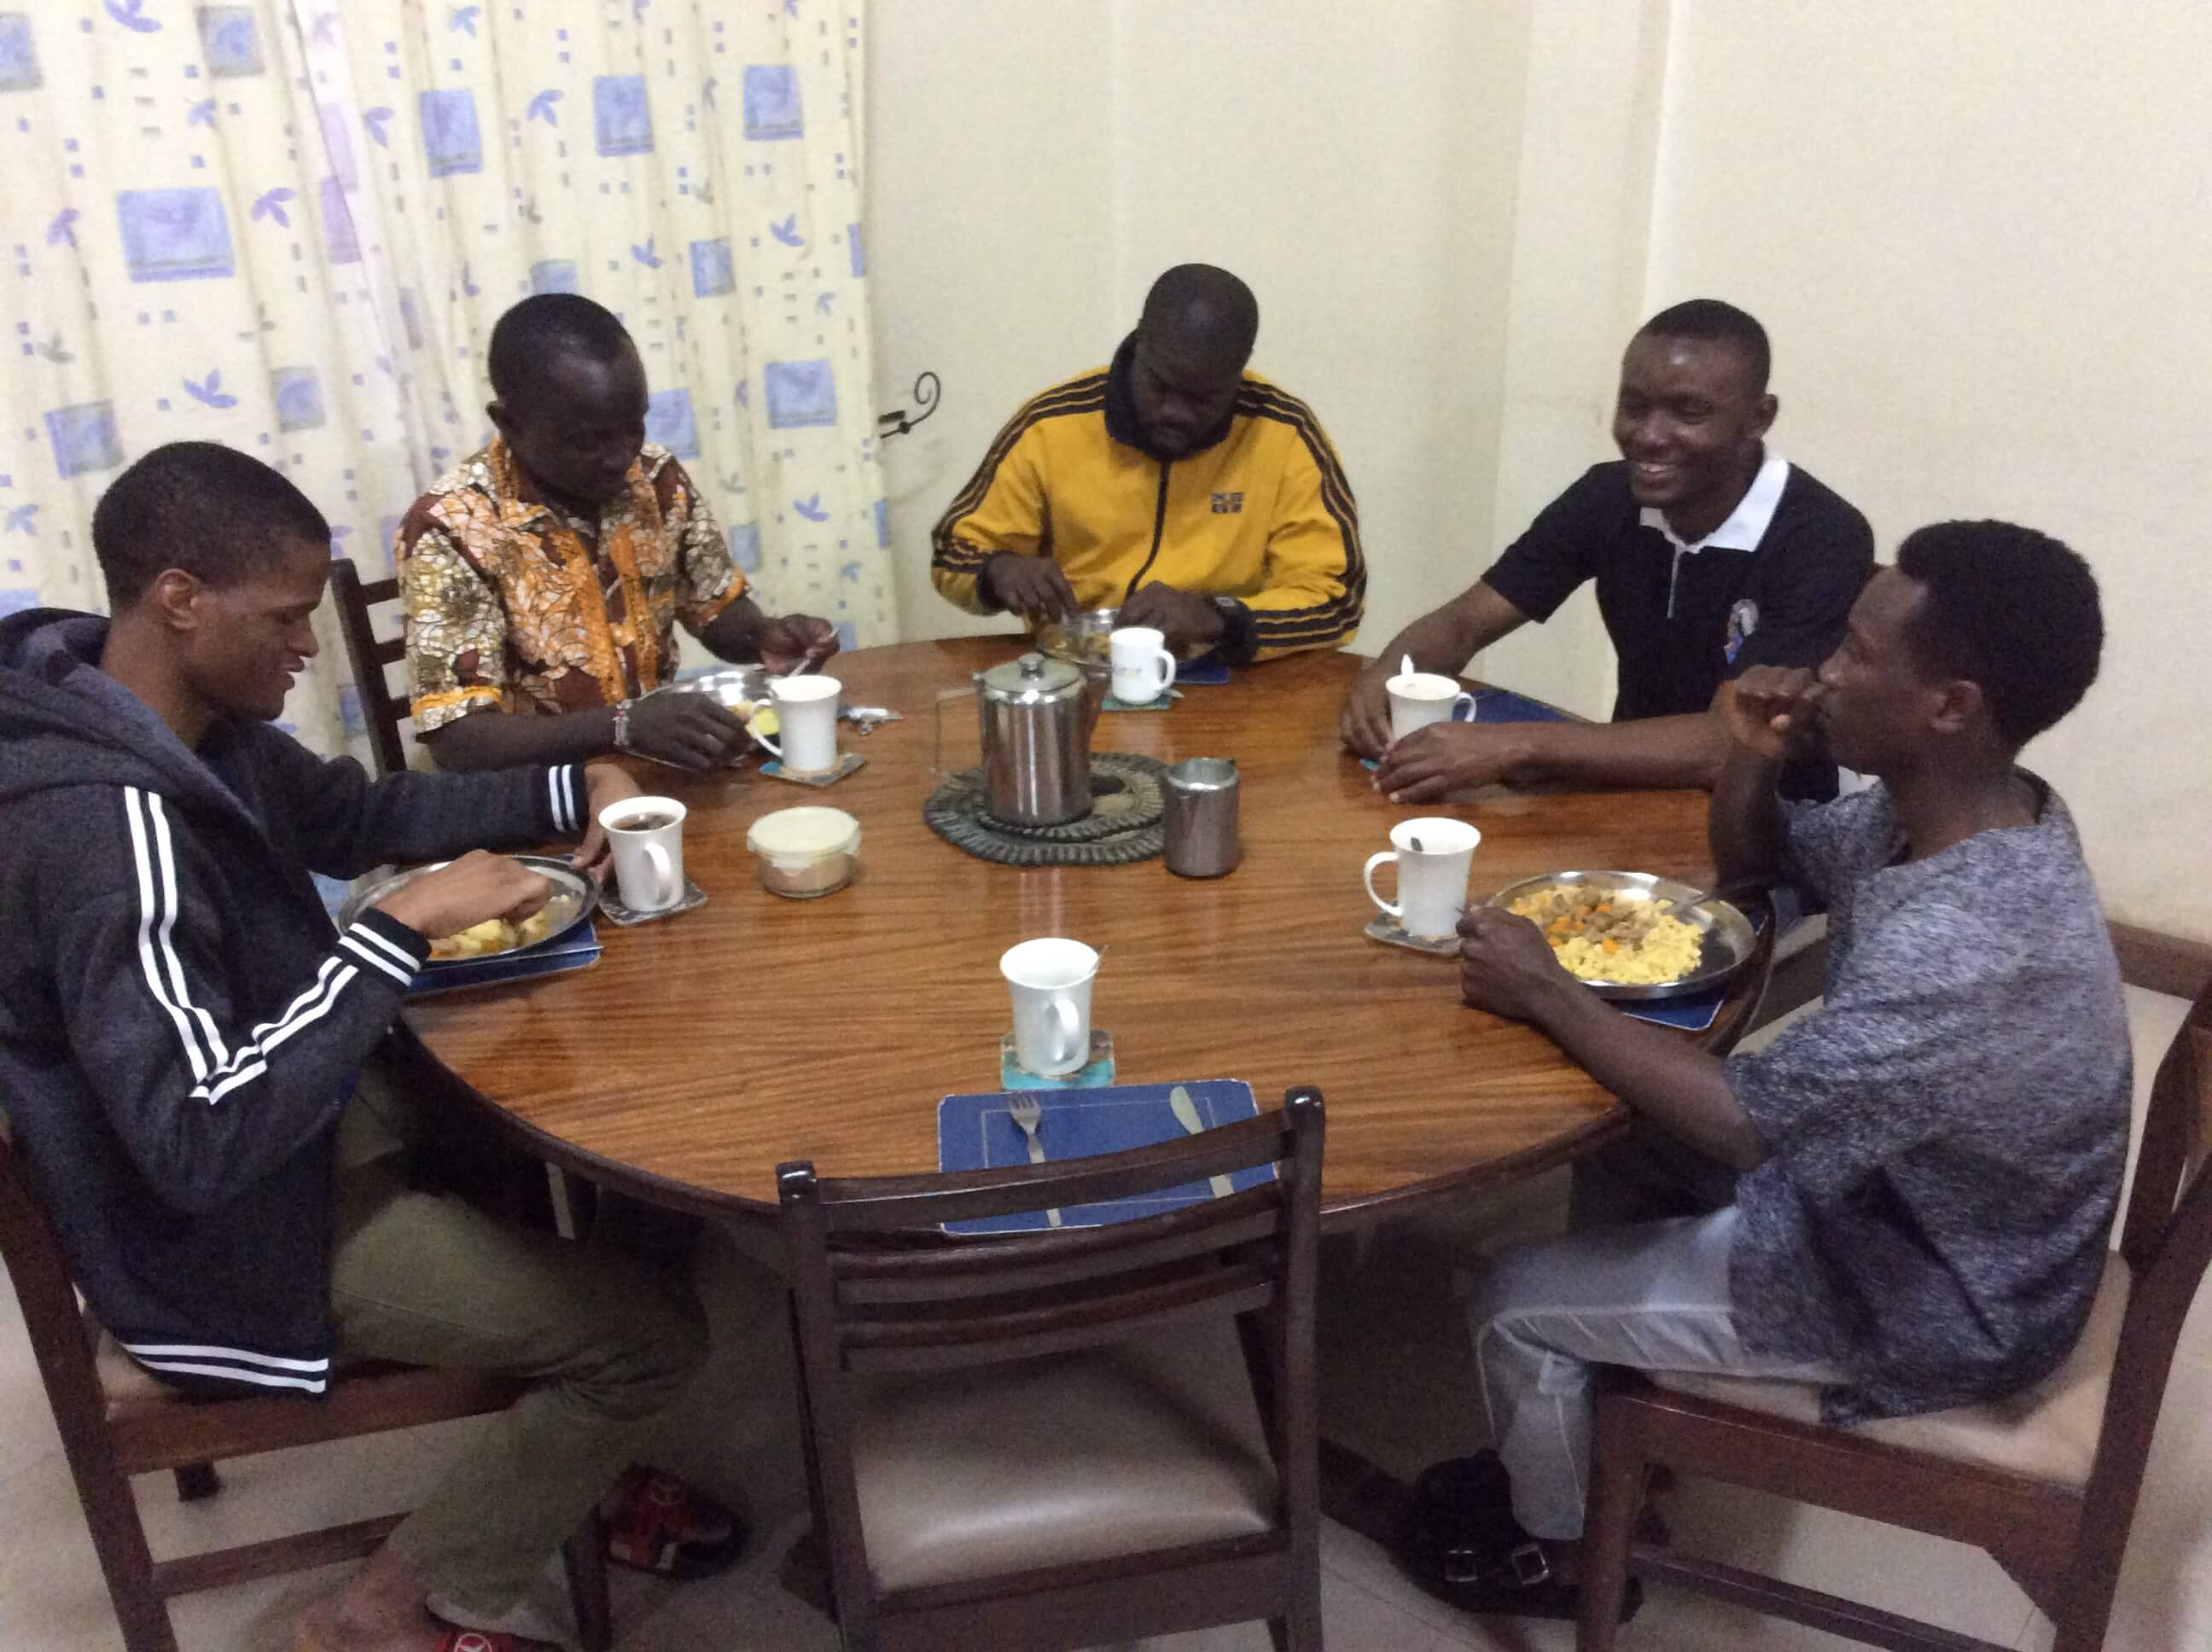 SMA Seminarians take their meal together